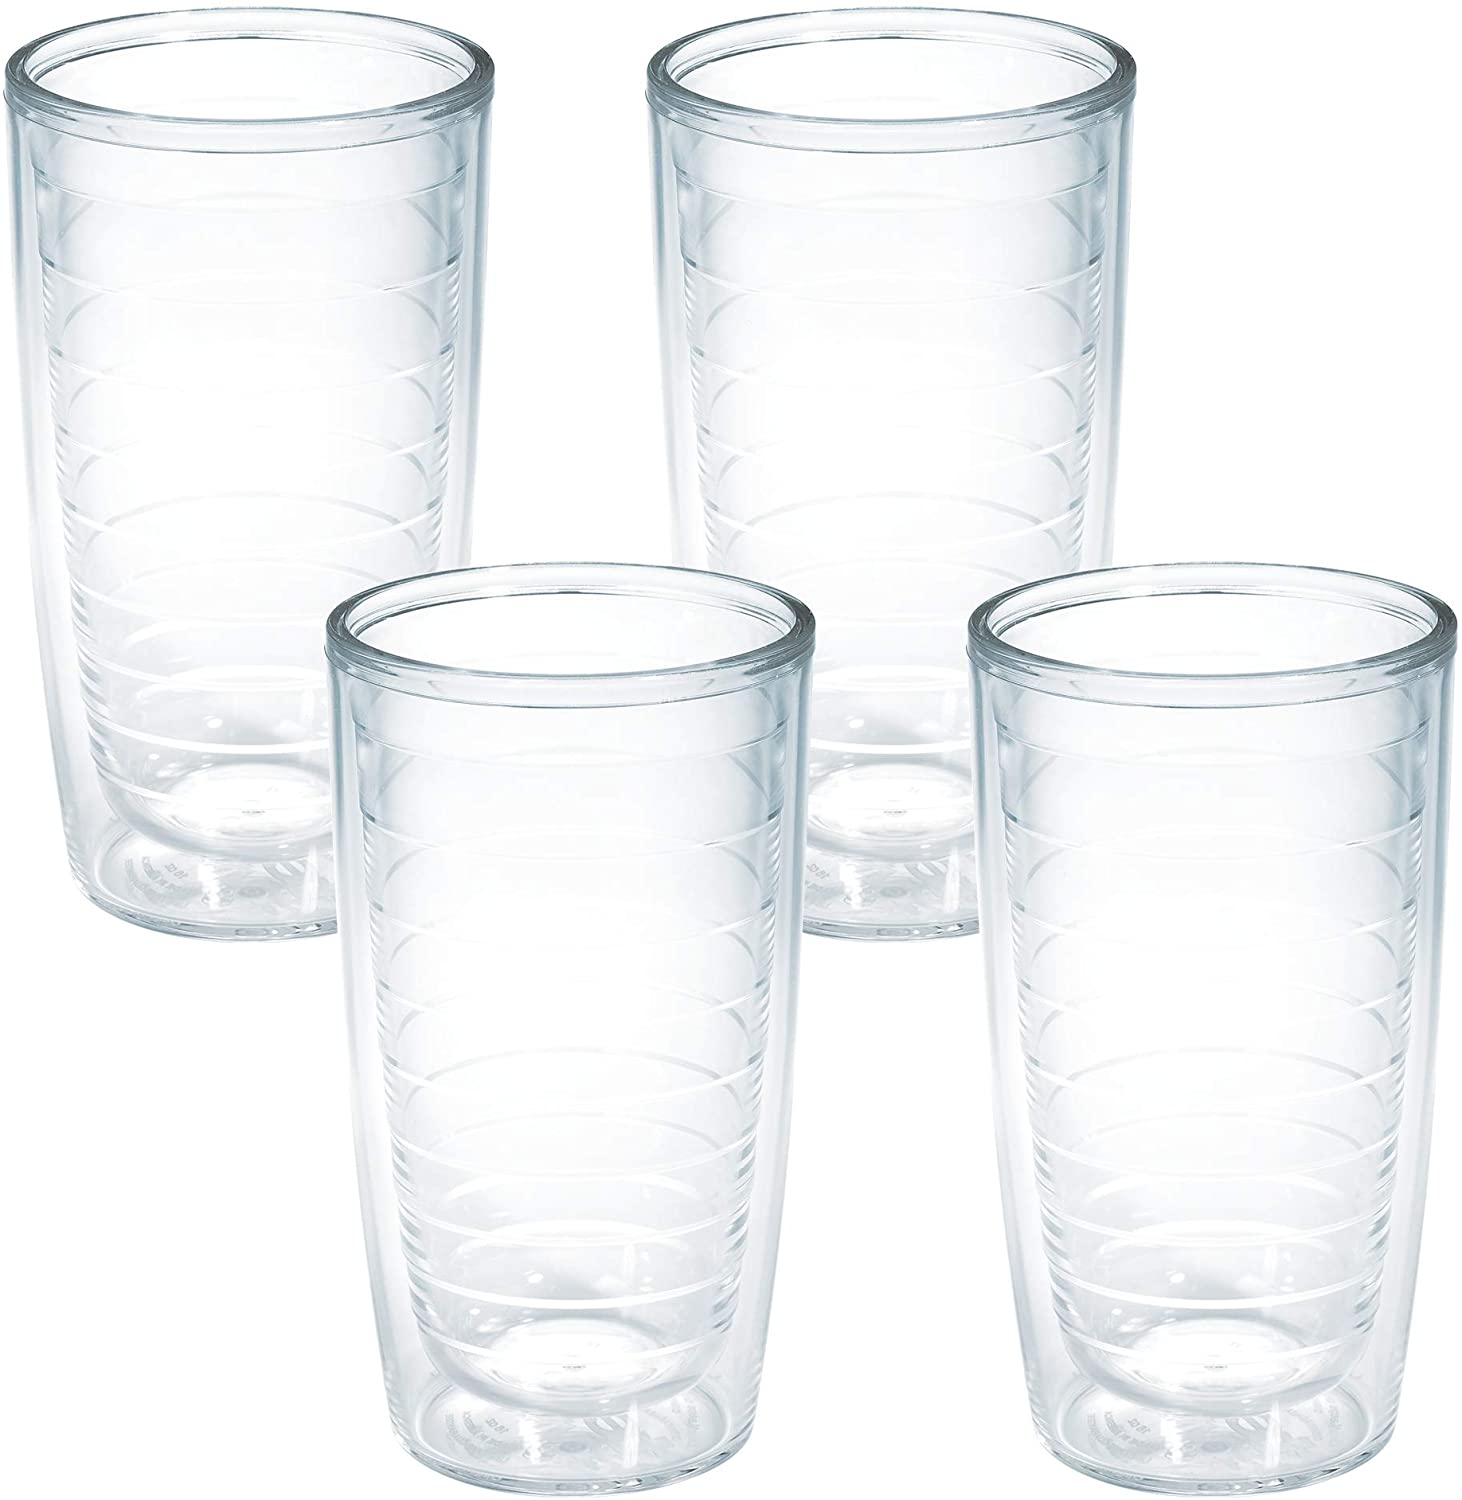 Tervis Today's only Clear Colorful Insulated Tumbler 16oz - Boxed Pack 4 Seasonal Wrap Introduction